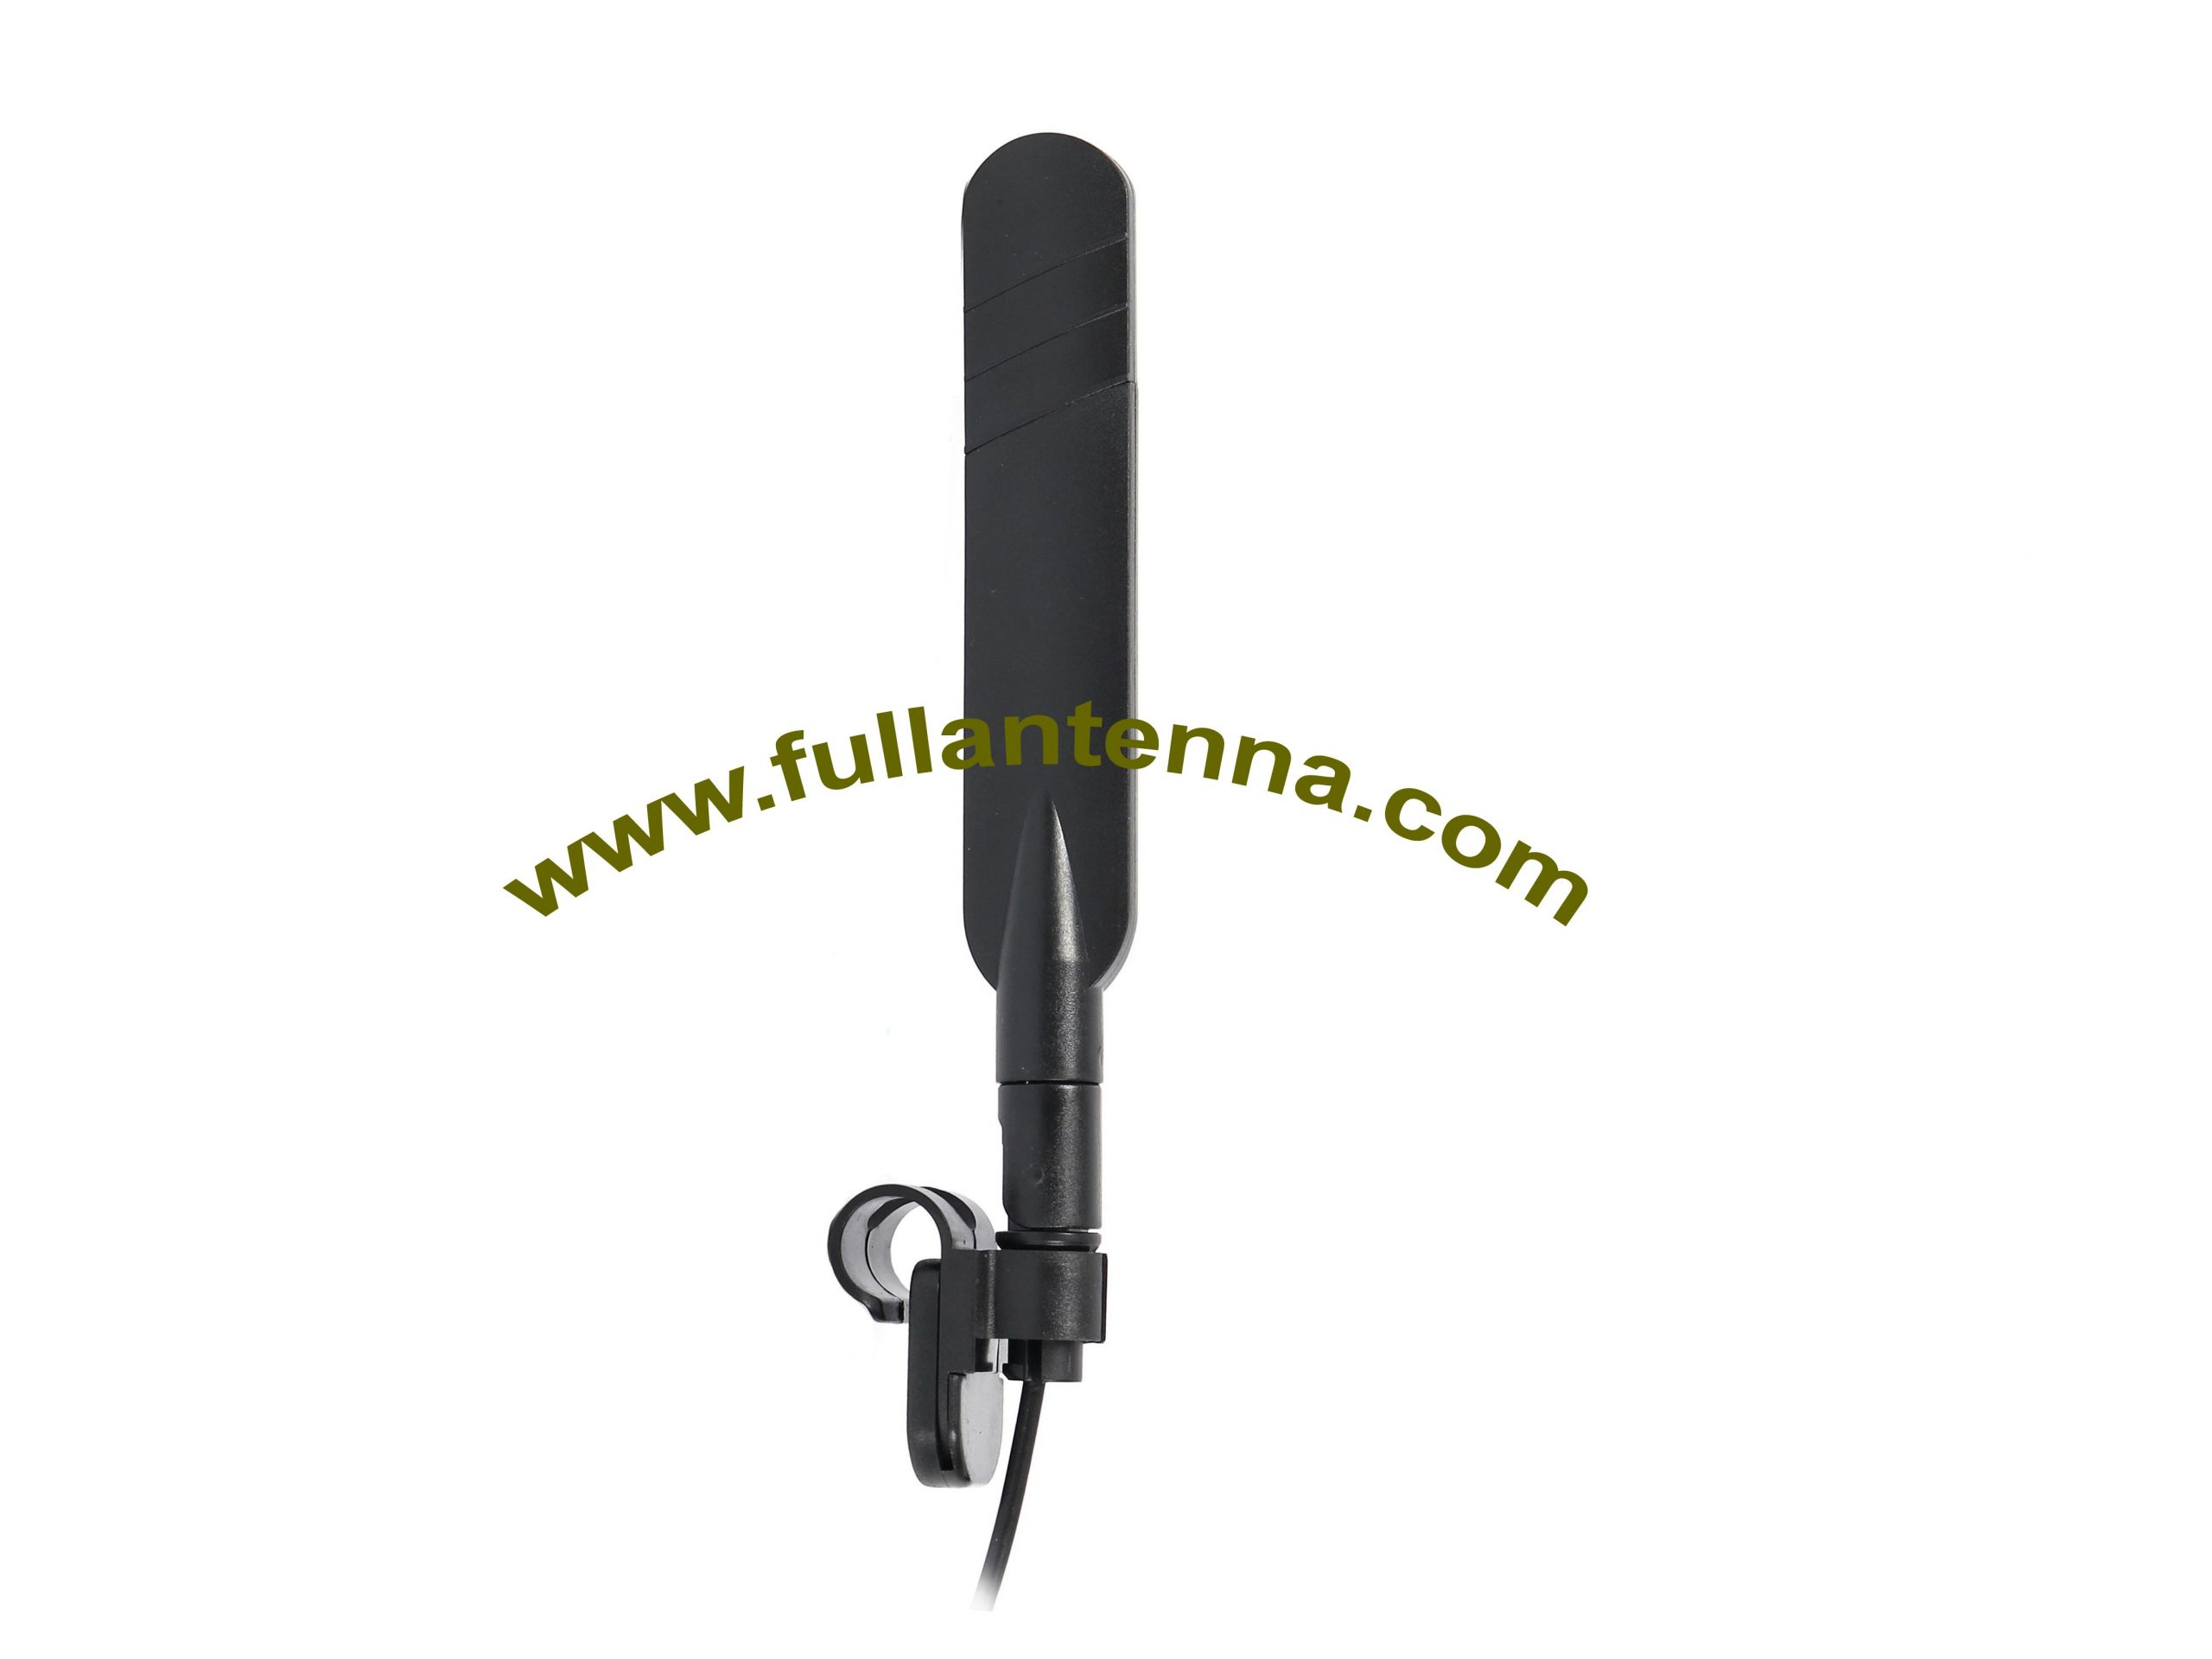 P/N:FA2400.0202Clip,WiFi/2.4G External Antenna,clip mount for computer,cable length 20cm-1meter